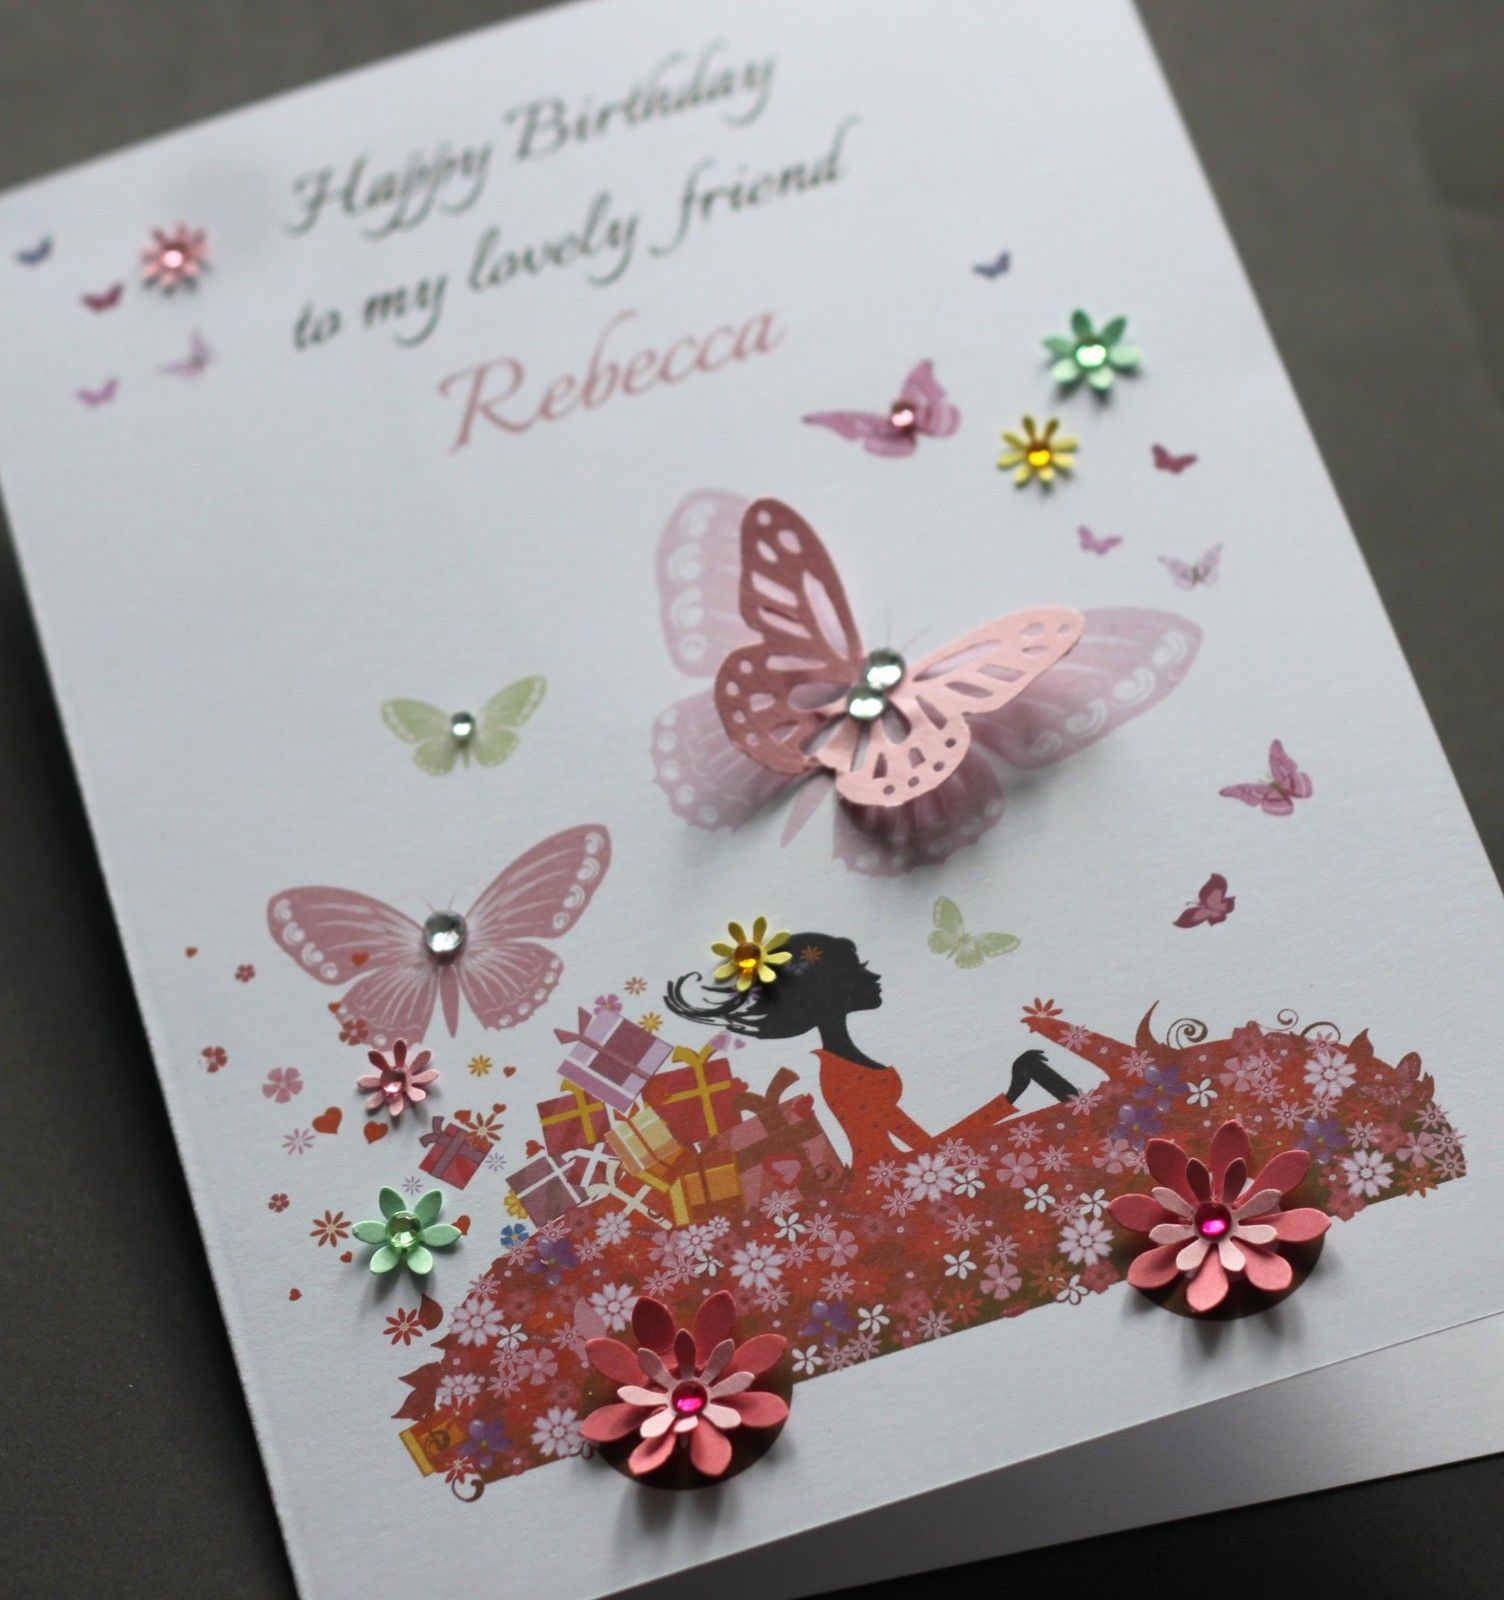 Ideas For Making Birthday Cards At Home A5 Handmade Personalised Cute Car Birthday Card Sister Friend Daughter Mum